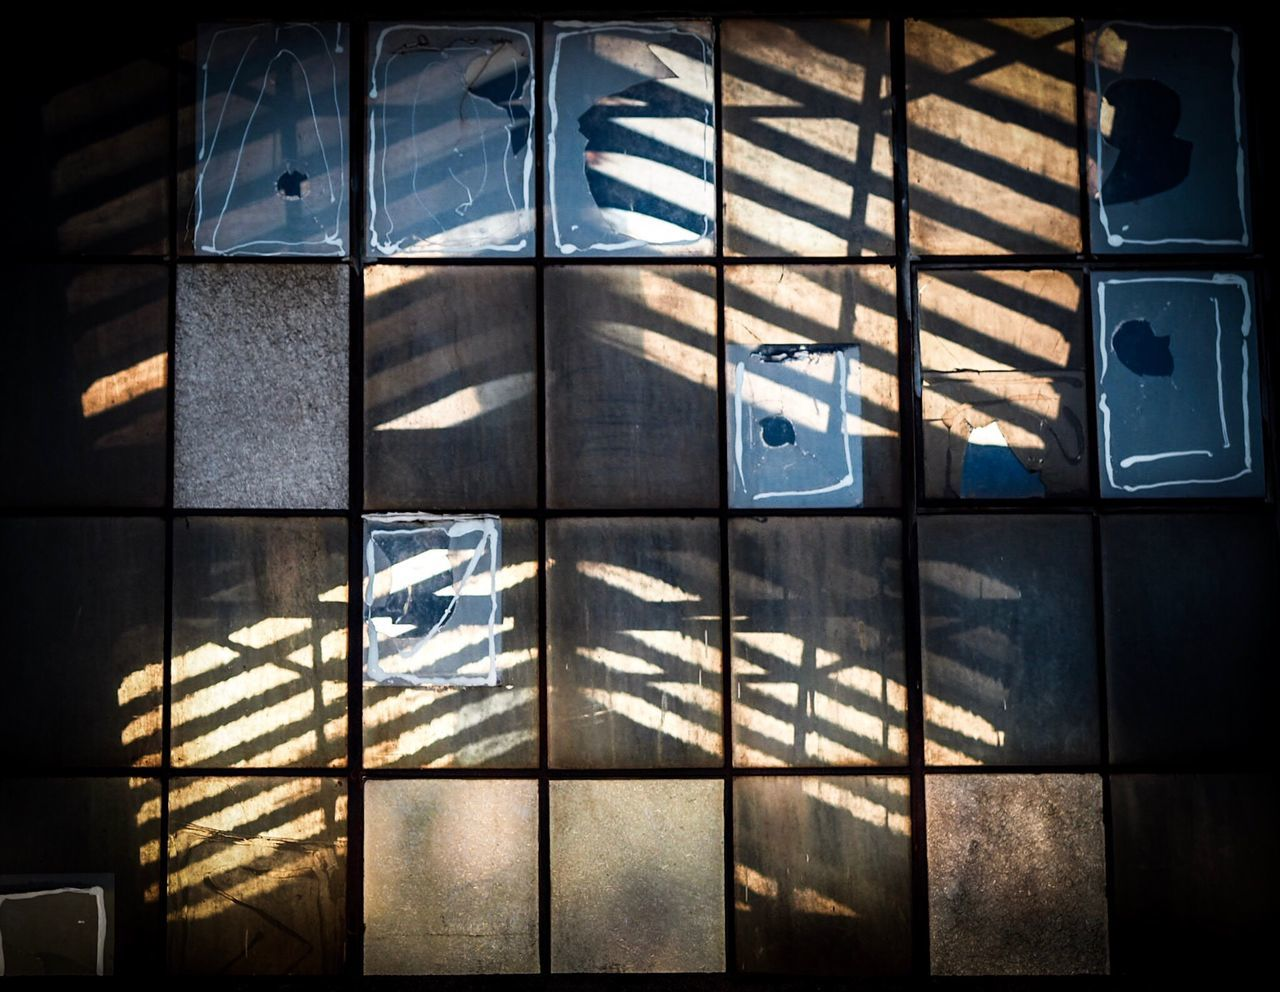 No People Day Shadow Sunlight Outdoors Close-up Olympus The Architect - 2017 EyeEm Awards Olympus OM-D E-M5 Mk.II Copenhagen Glass - Material City Low Angle View Architecture Building Exterior Urban Geometry Façade Industrial Forms Window Vintage Old Buildings Glass Old Town History